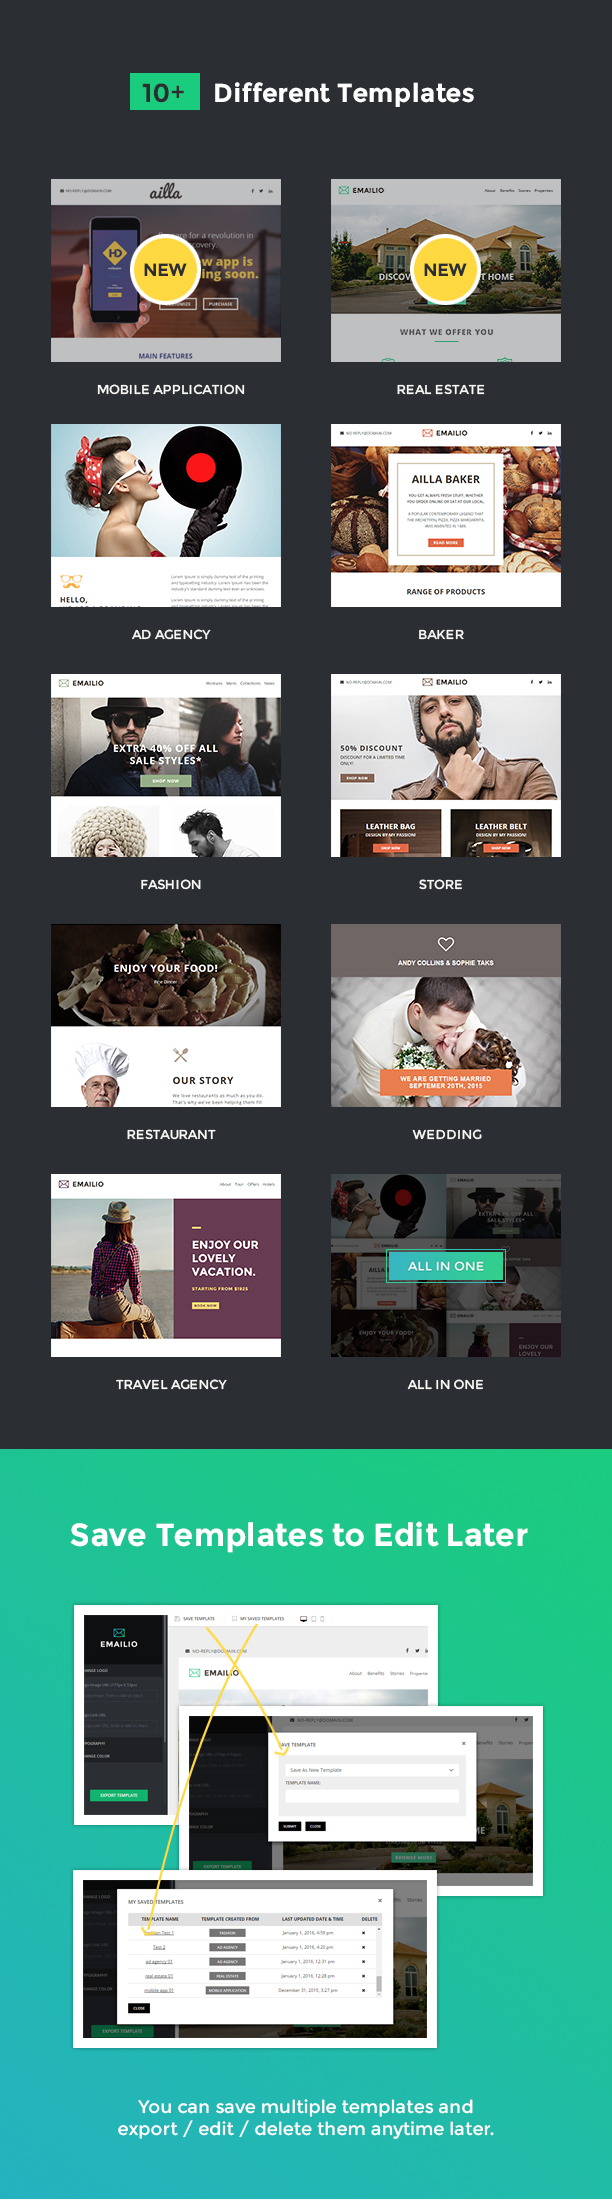 Emailio Responsive Multipurpose Email Template With Online Email ...